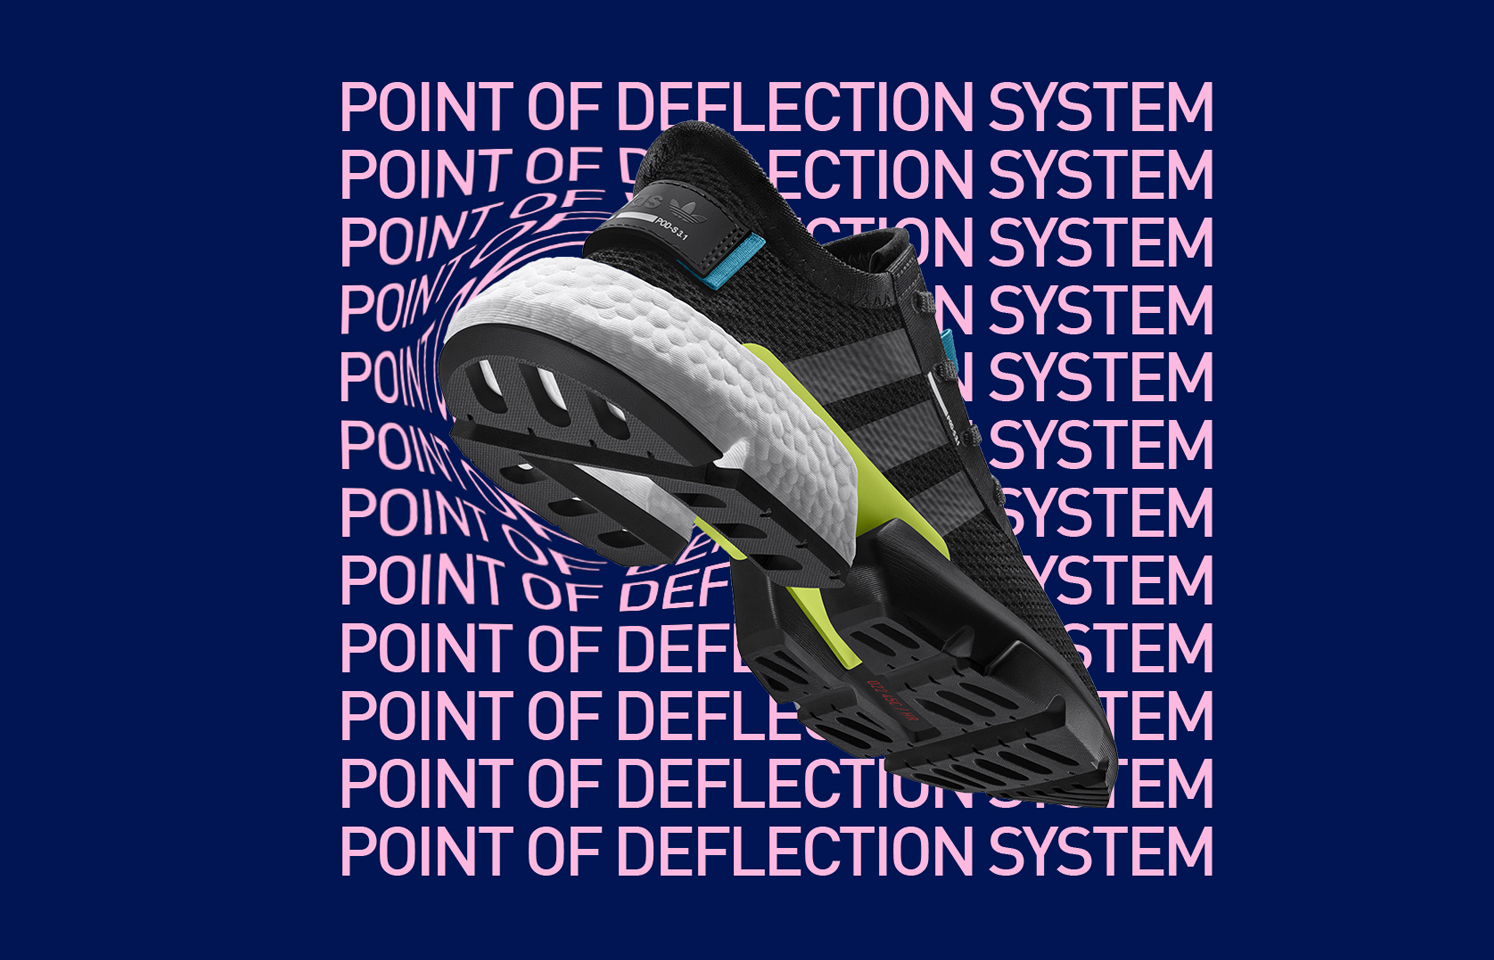 adidas Originals launch the brand new POD S3.1 'Point Of Deflection' system